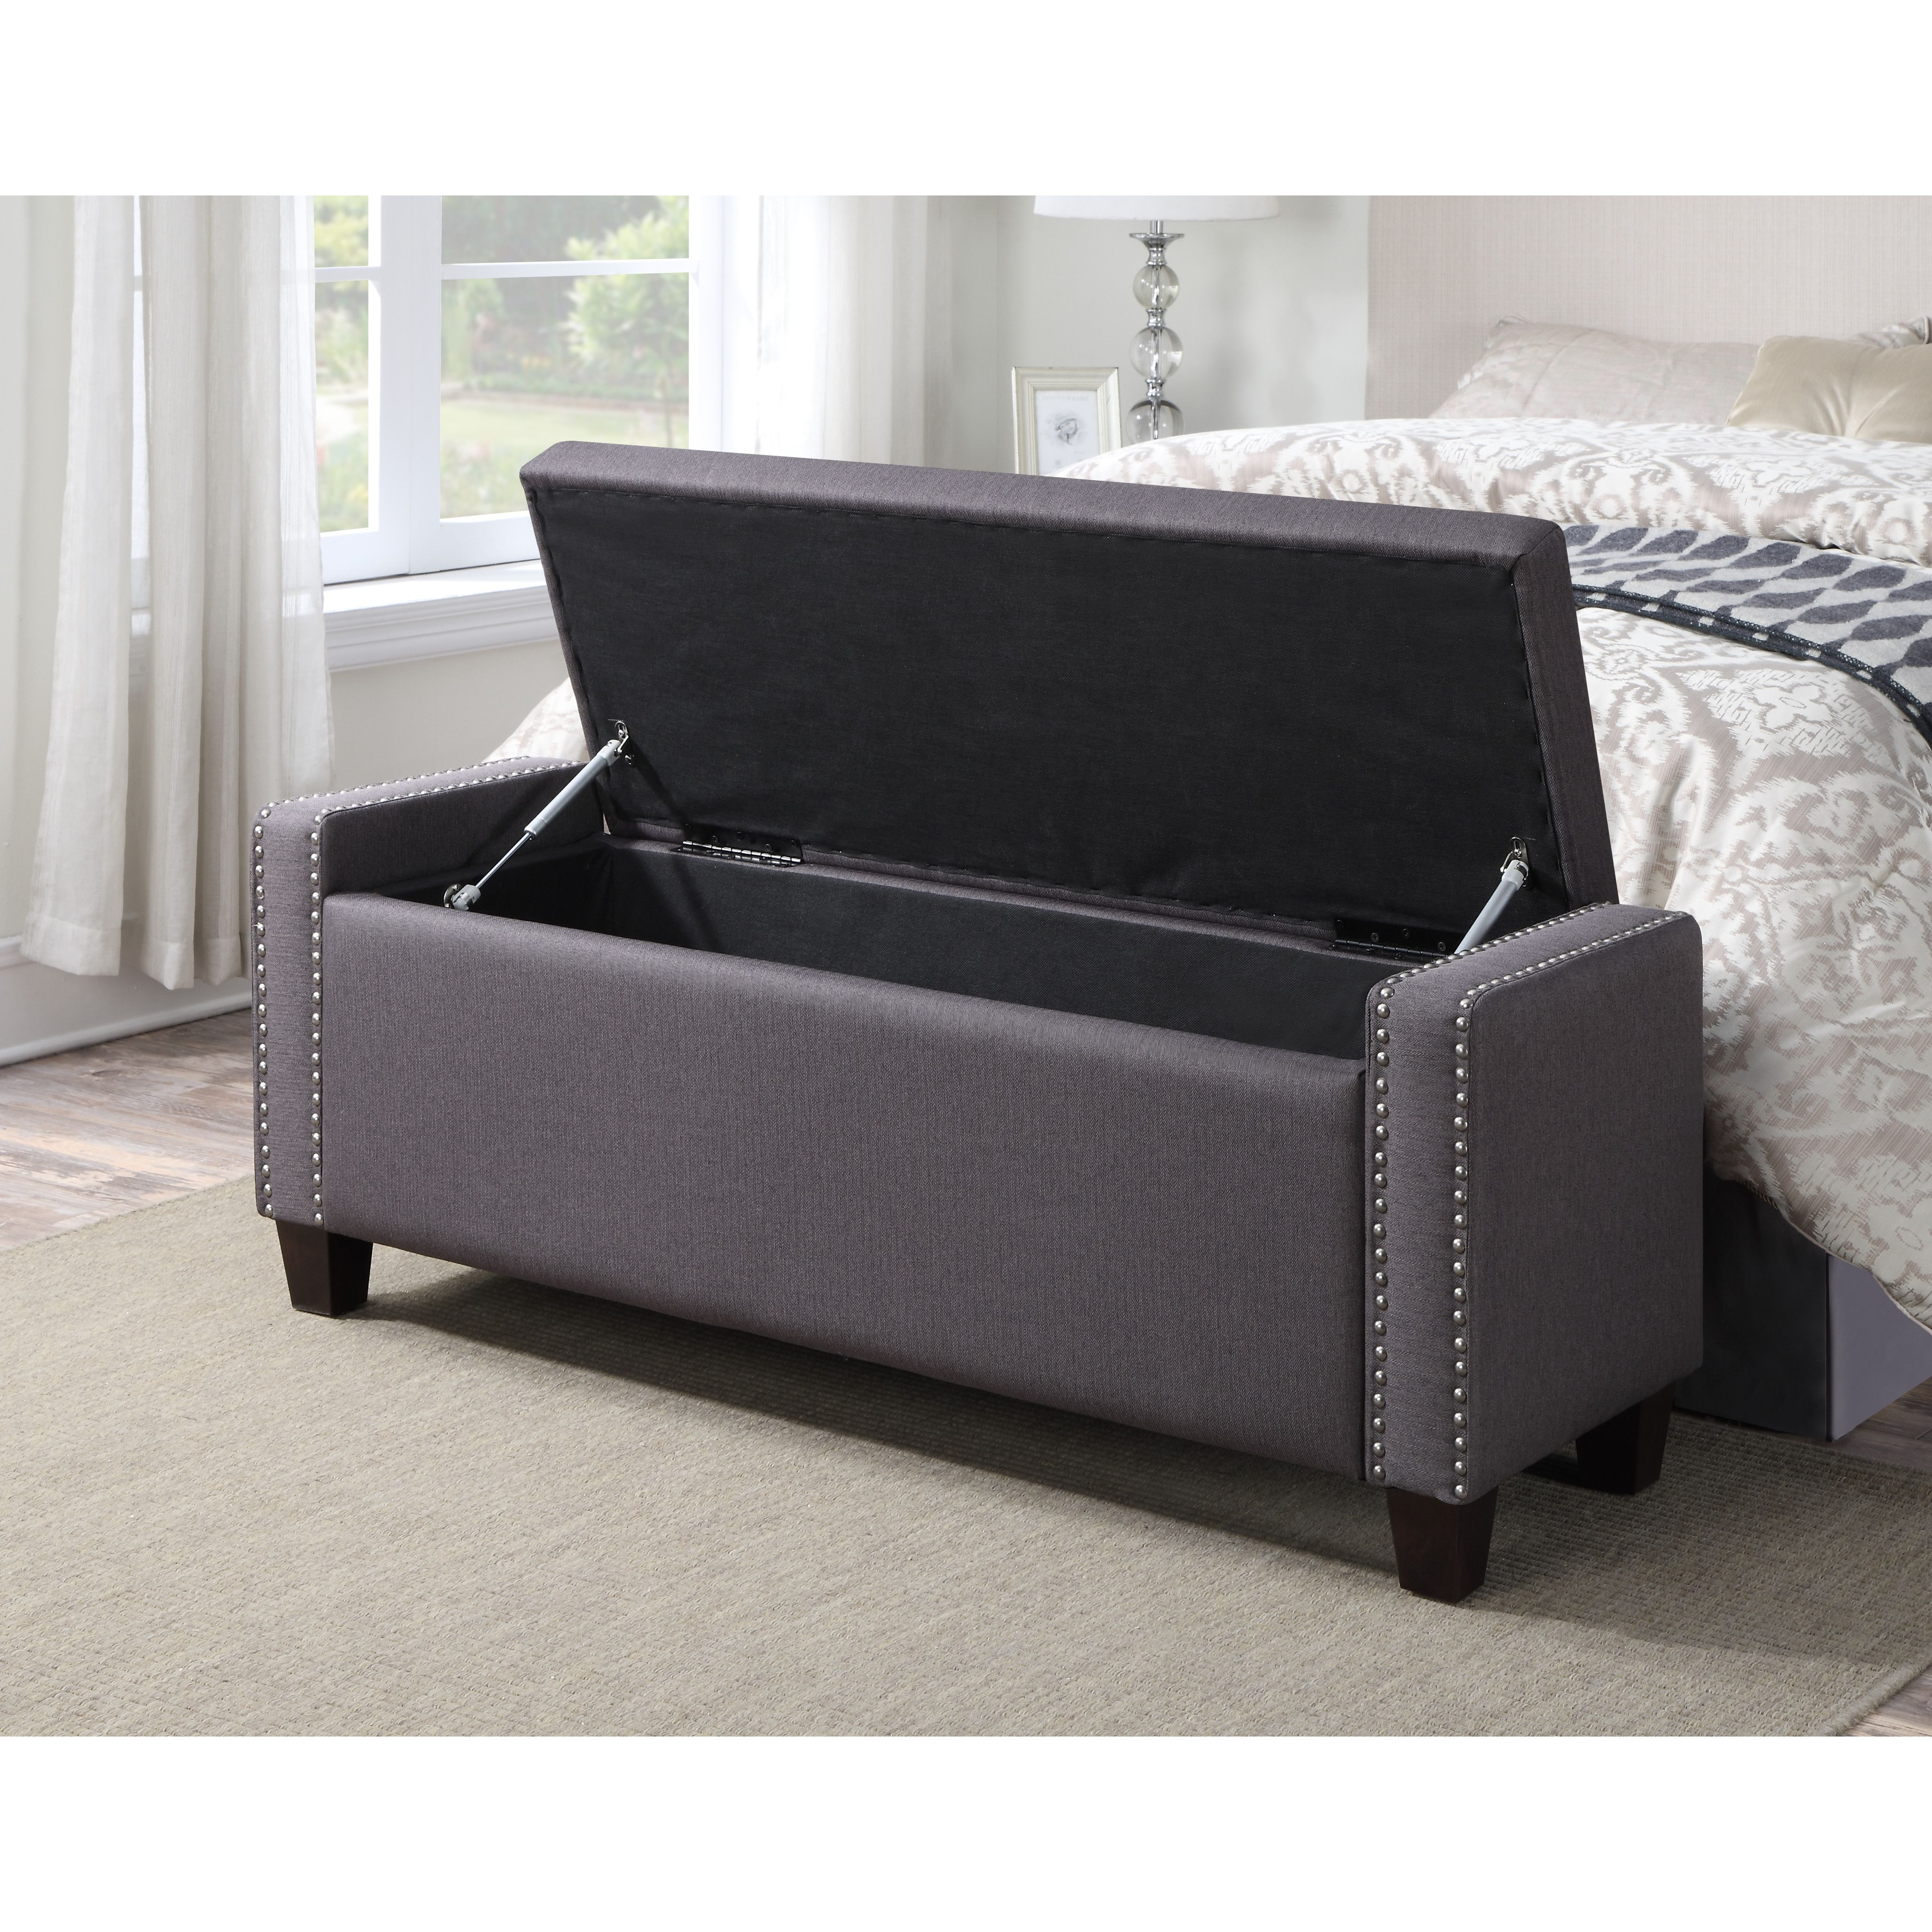 bedroom underrated is desafiocincodias bench love for why considered